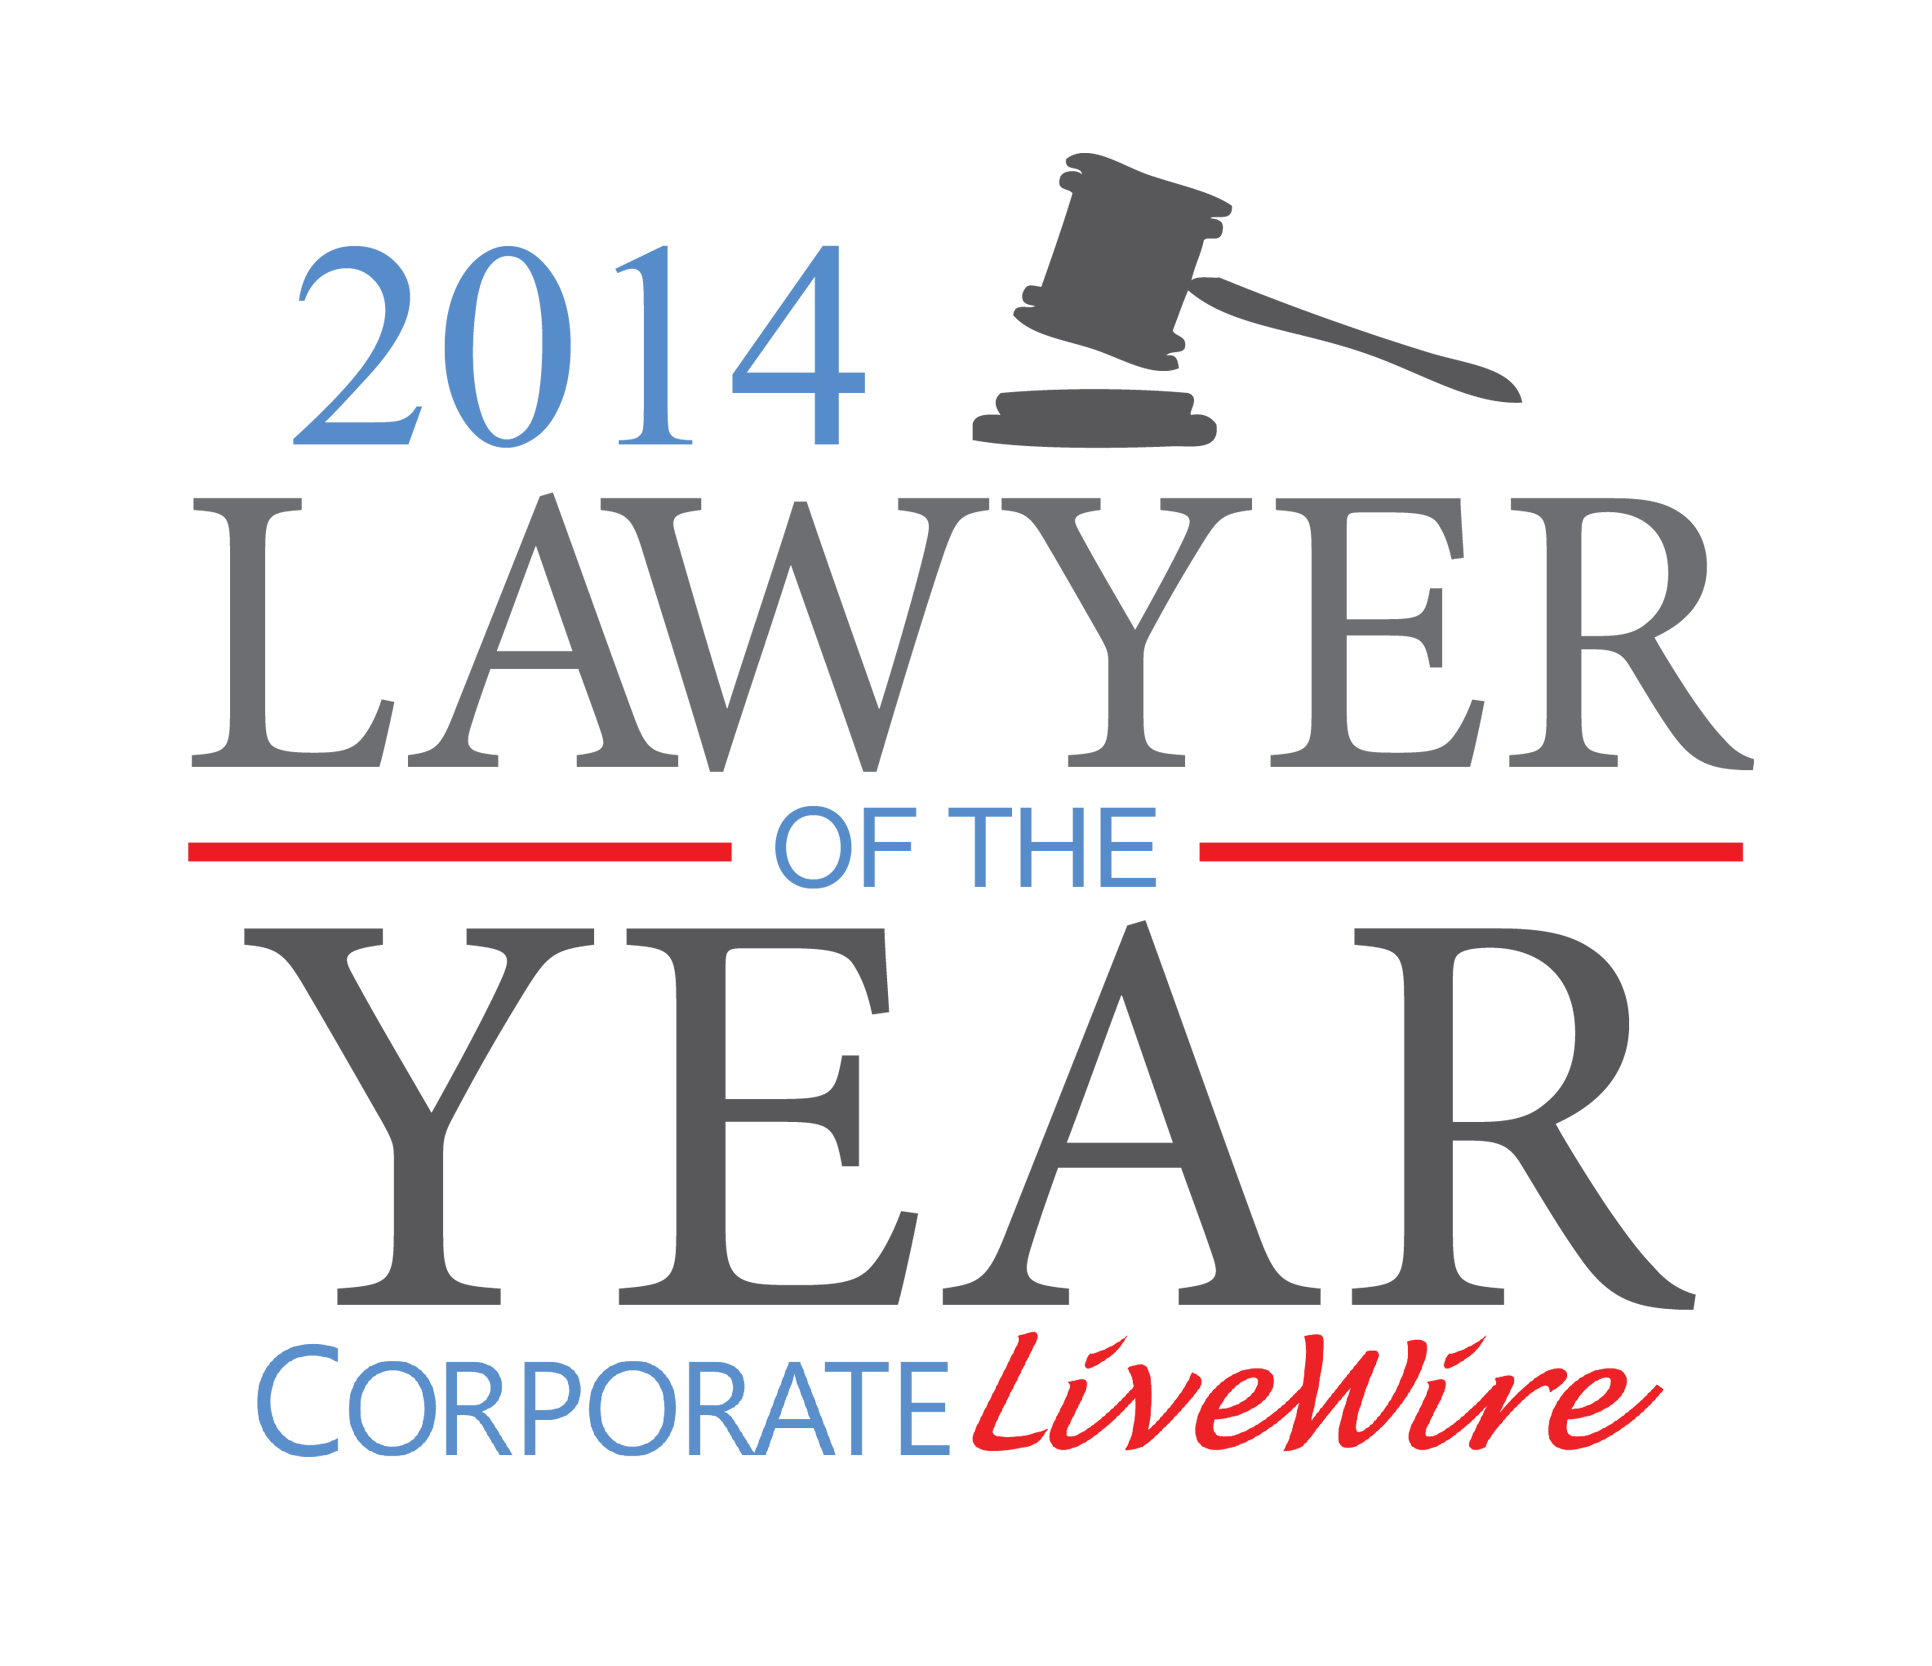 Lawyer of the Year 2014 - 2014